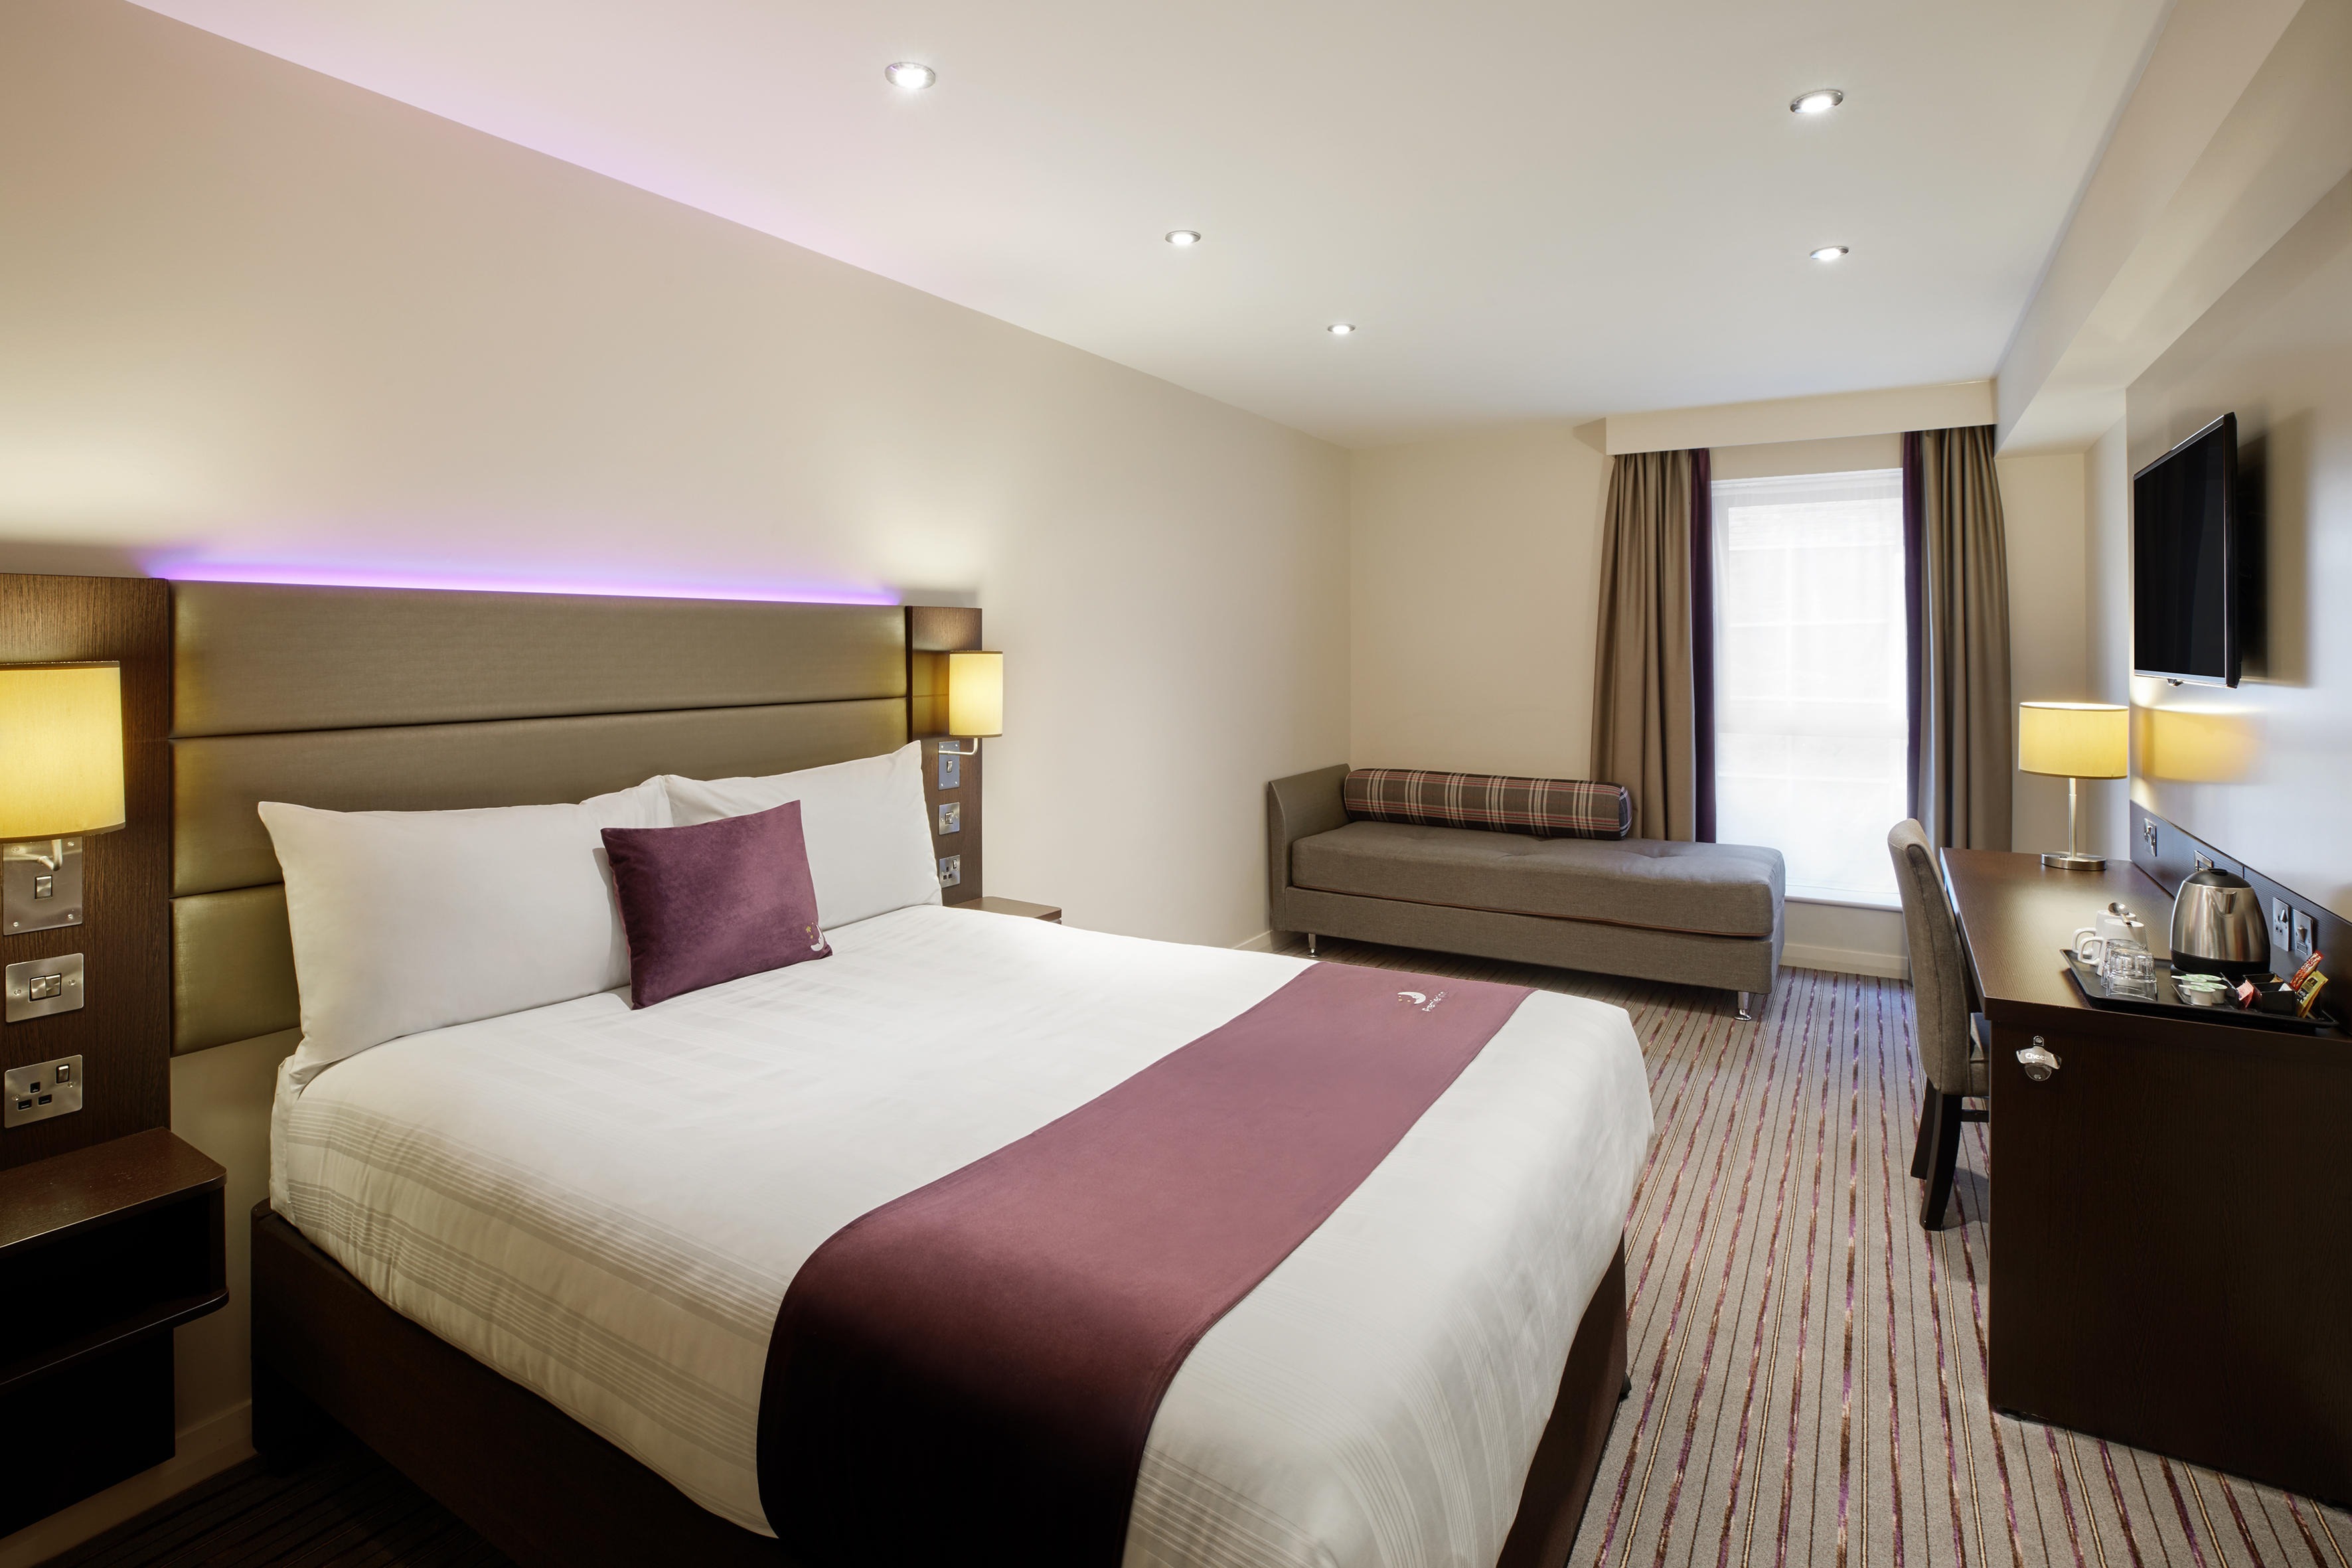 Premier Inn bedroom Premier Inn Lowestoft hotel Lowestoft 03333 211281